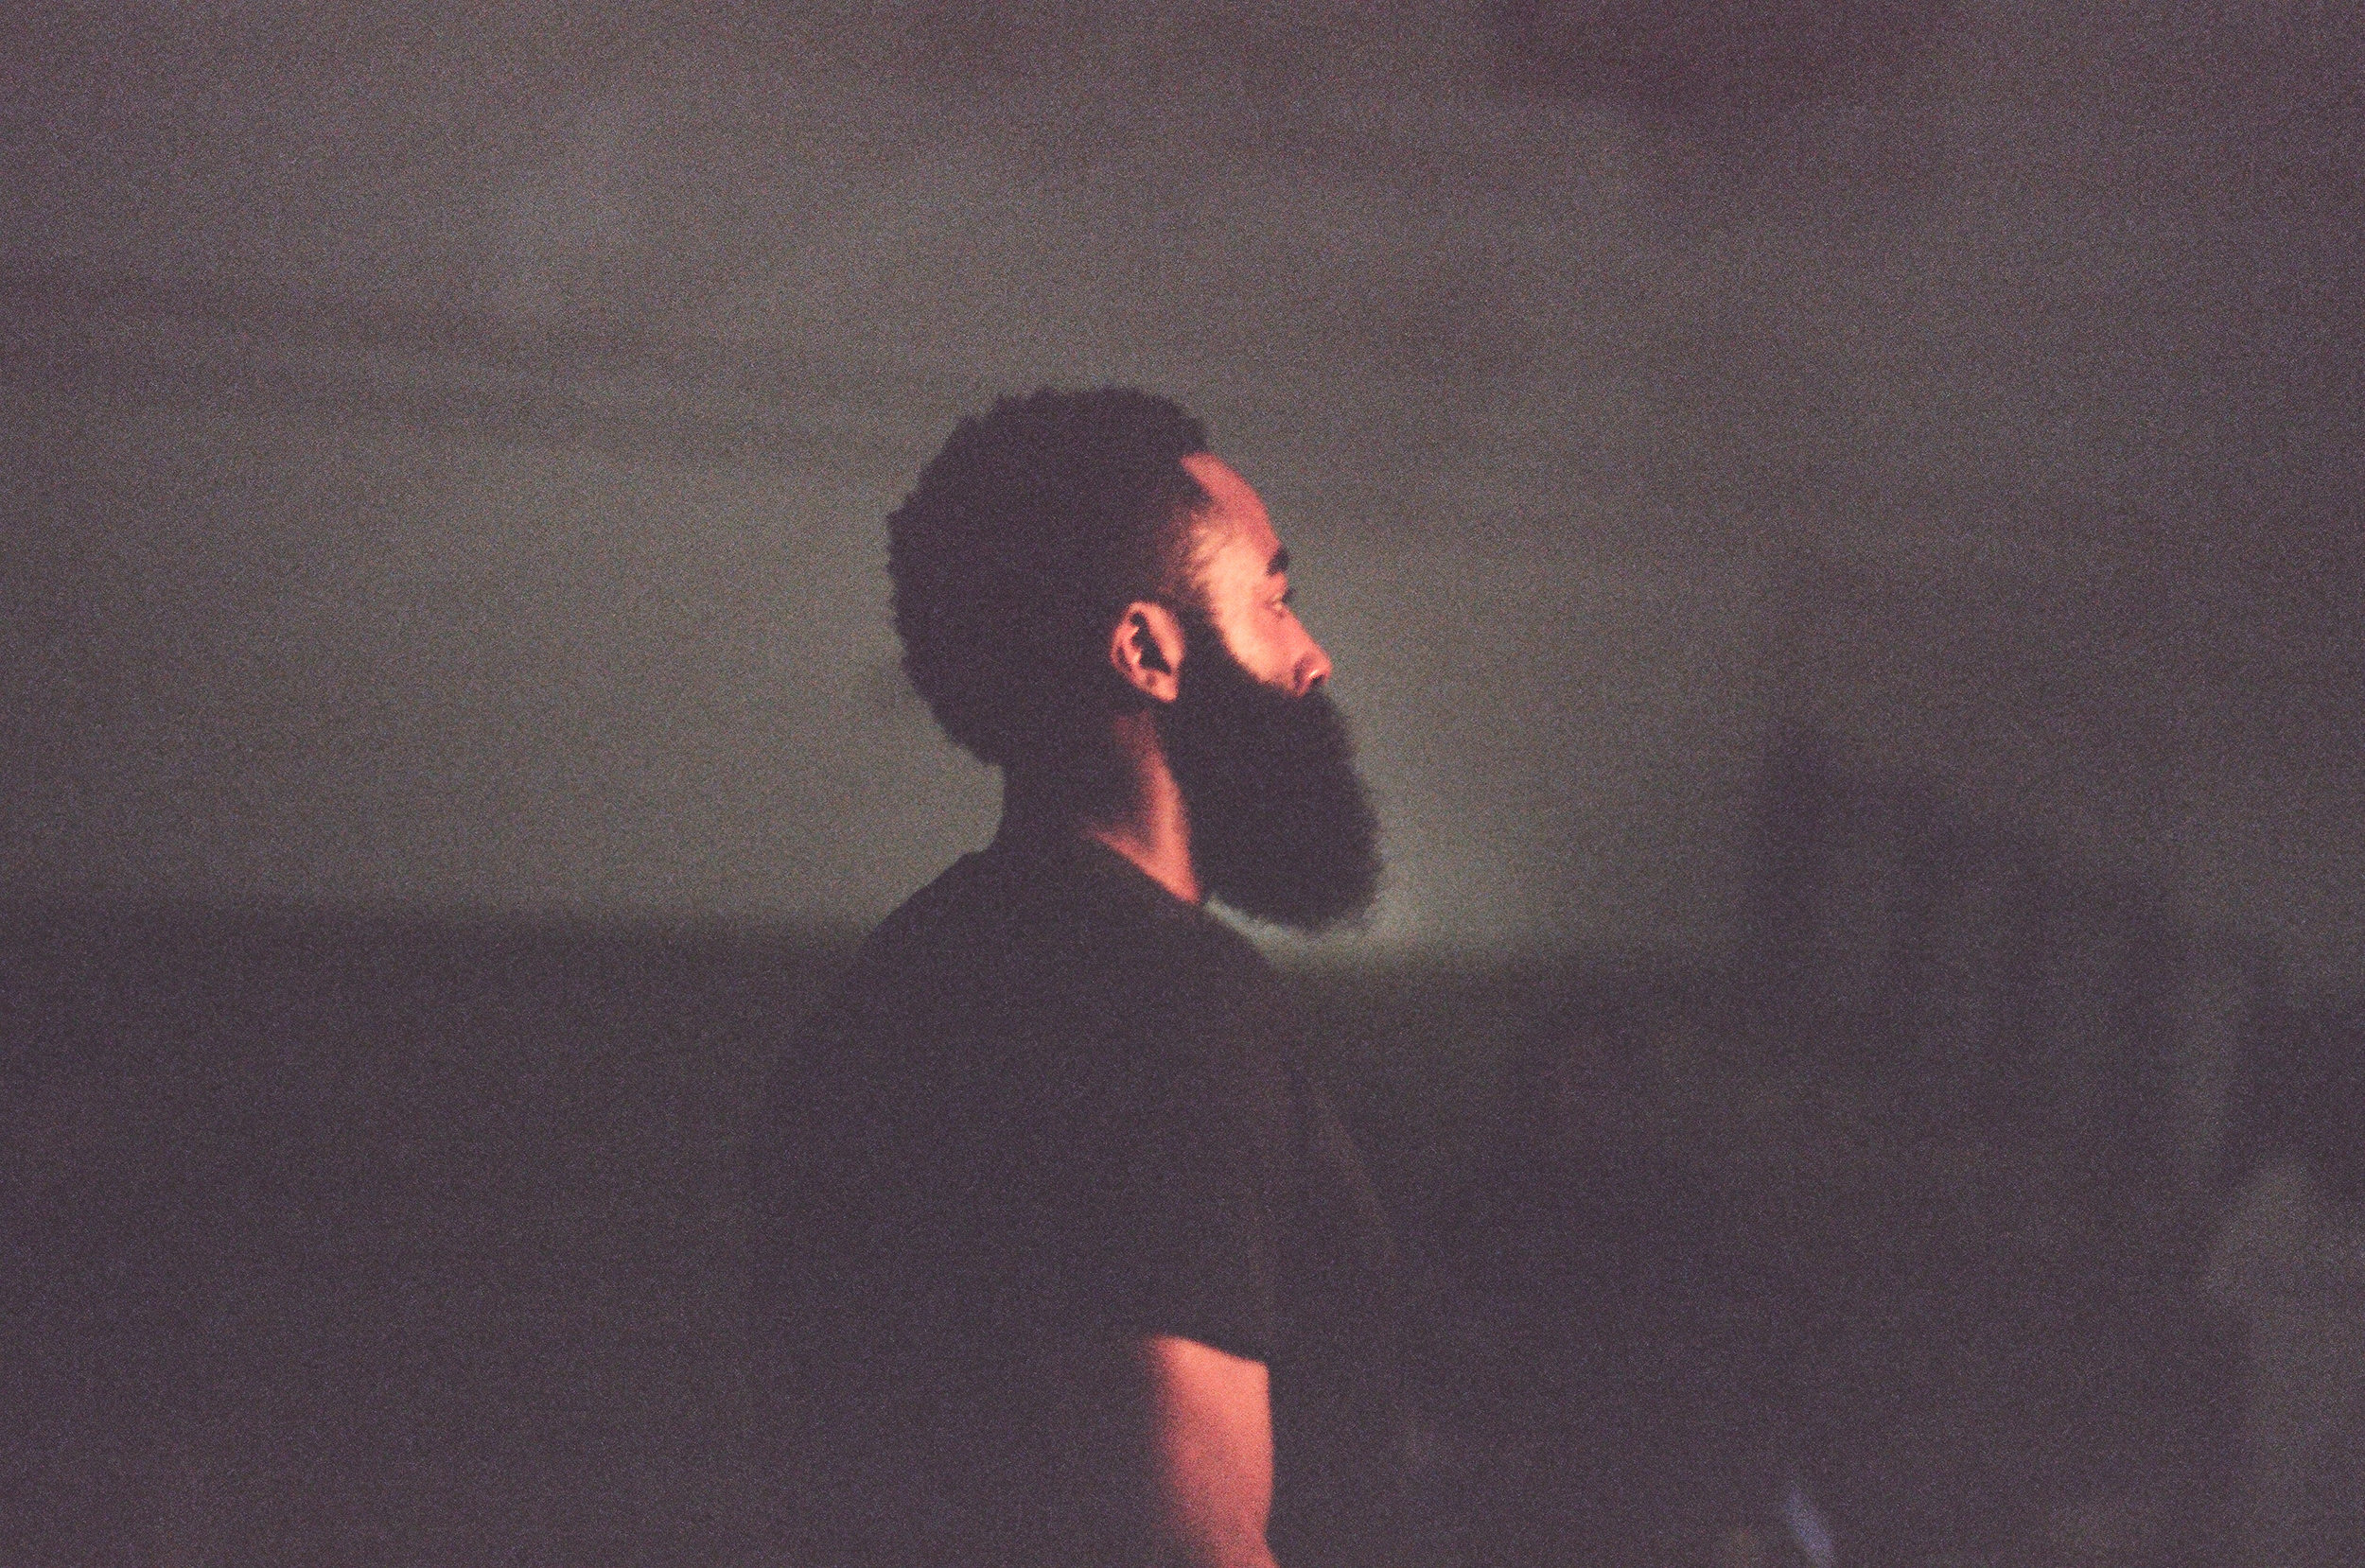 Shooting an MVP - Launching a brand: James Harden shot by Terry Snyder for Art of Sport